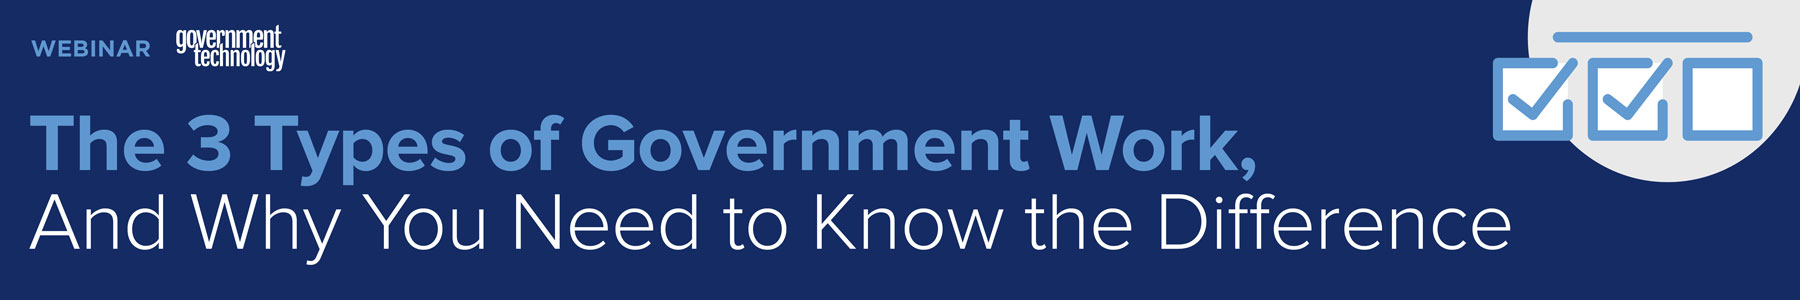 The 3 Types of Government Work, And Why You Need to Know the Difference